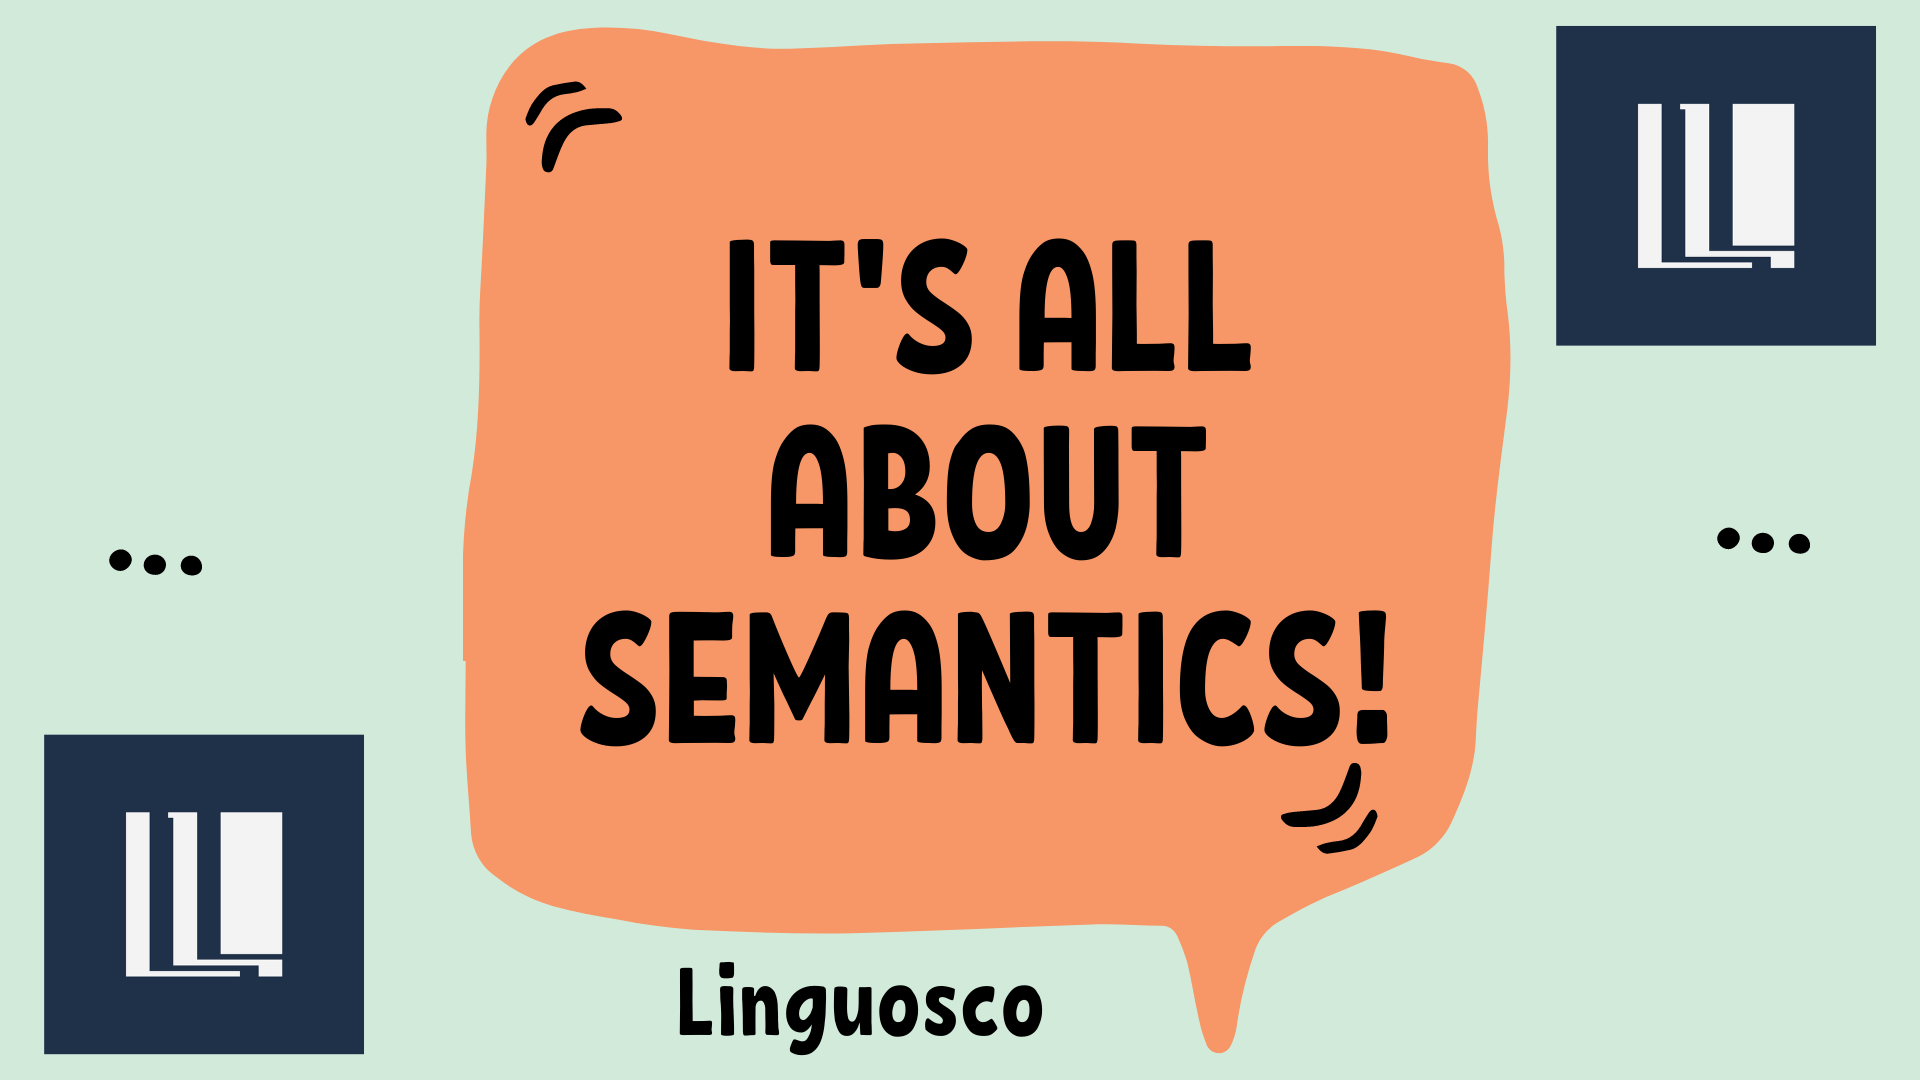 Meme of the Month - It's All About Semantics